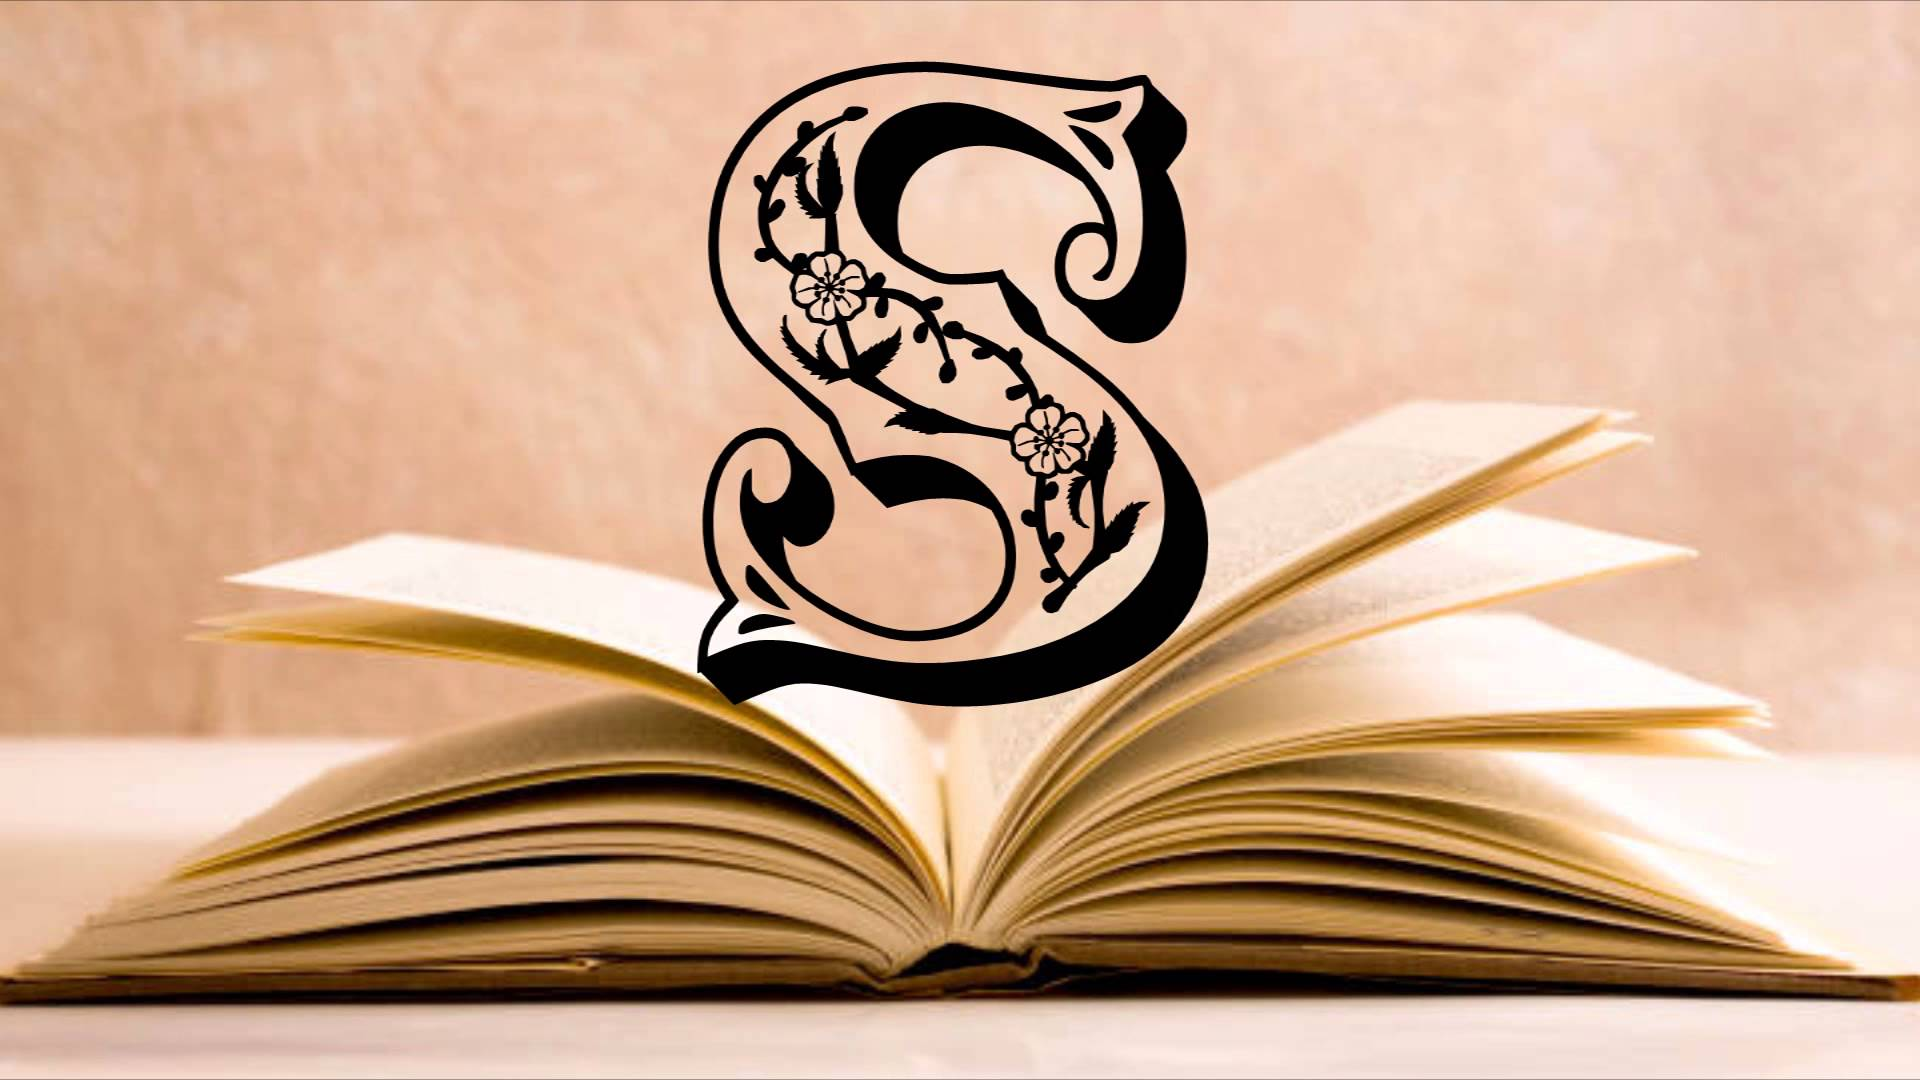 English Letter S Wallpaper